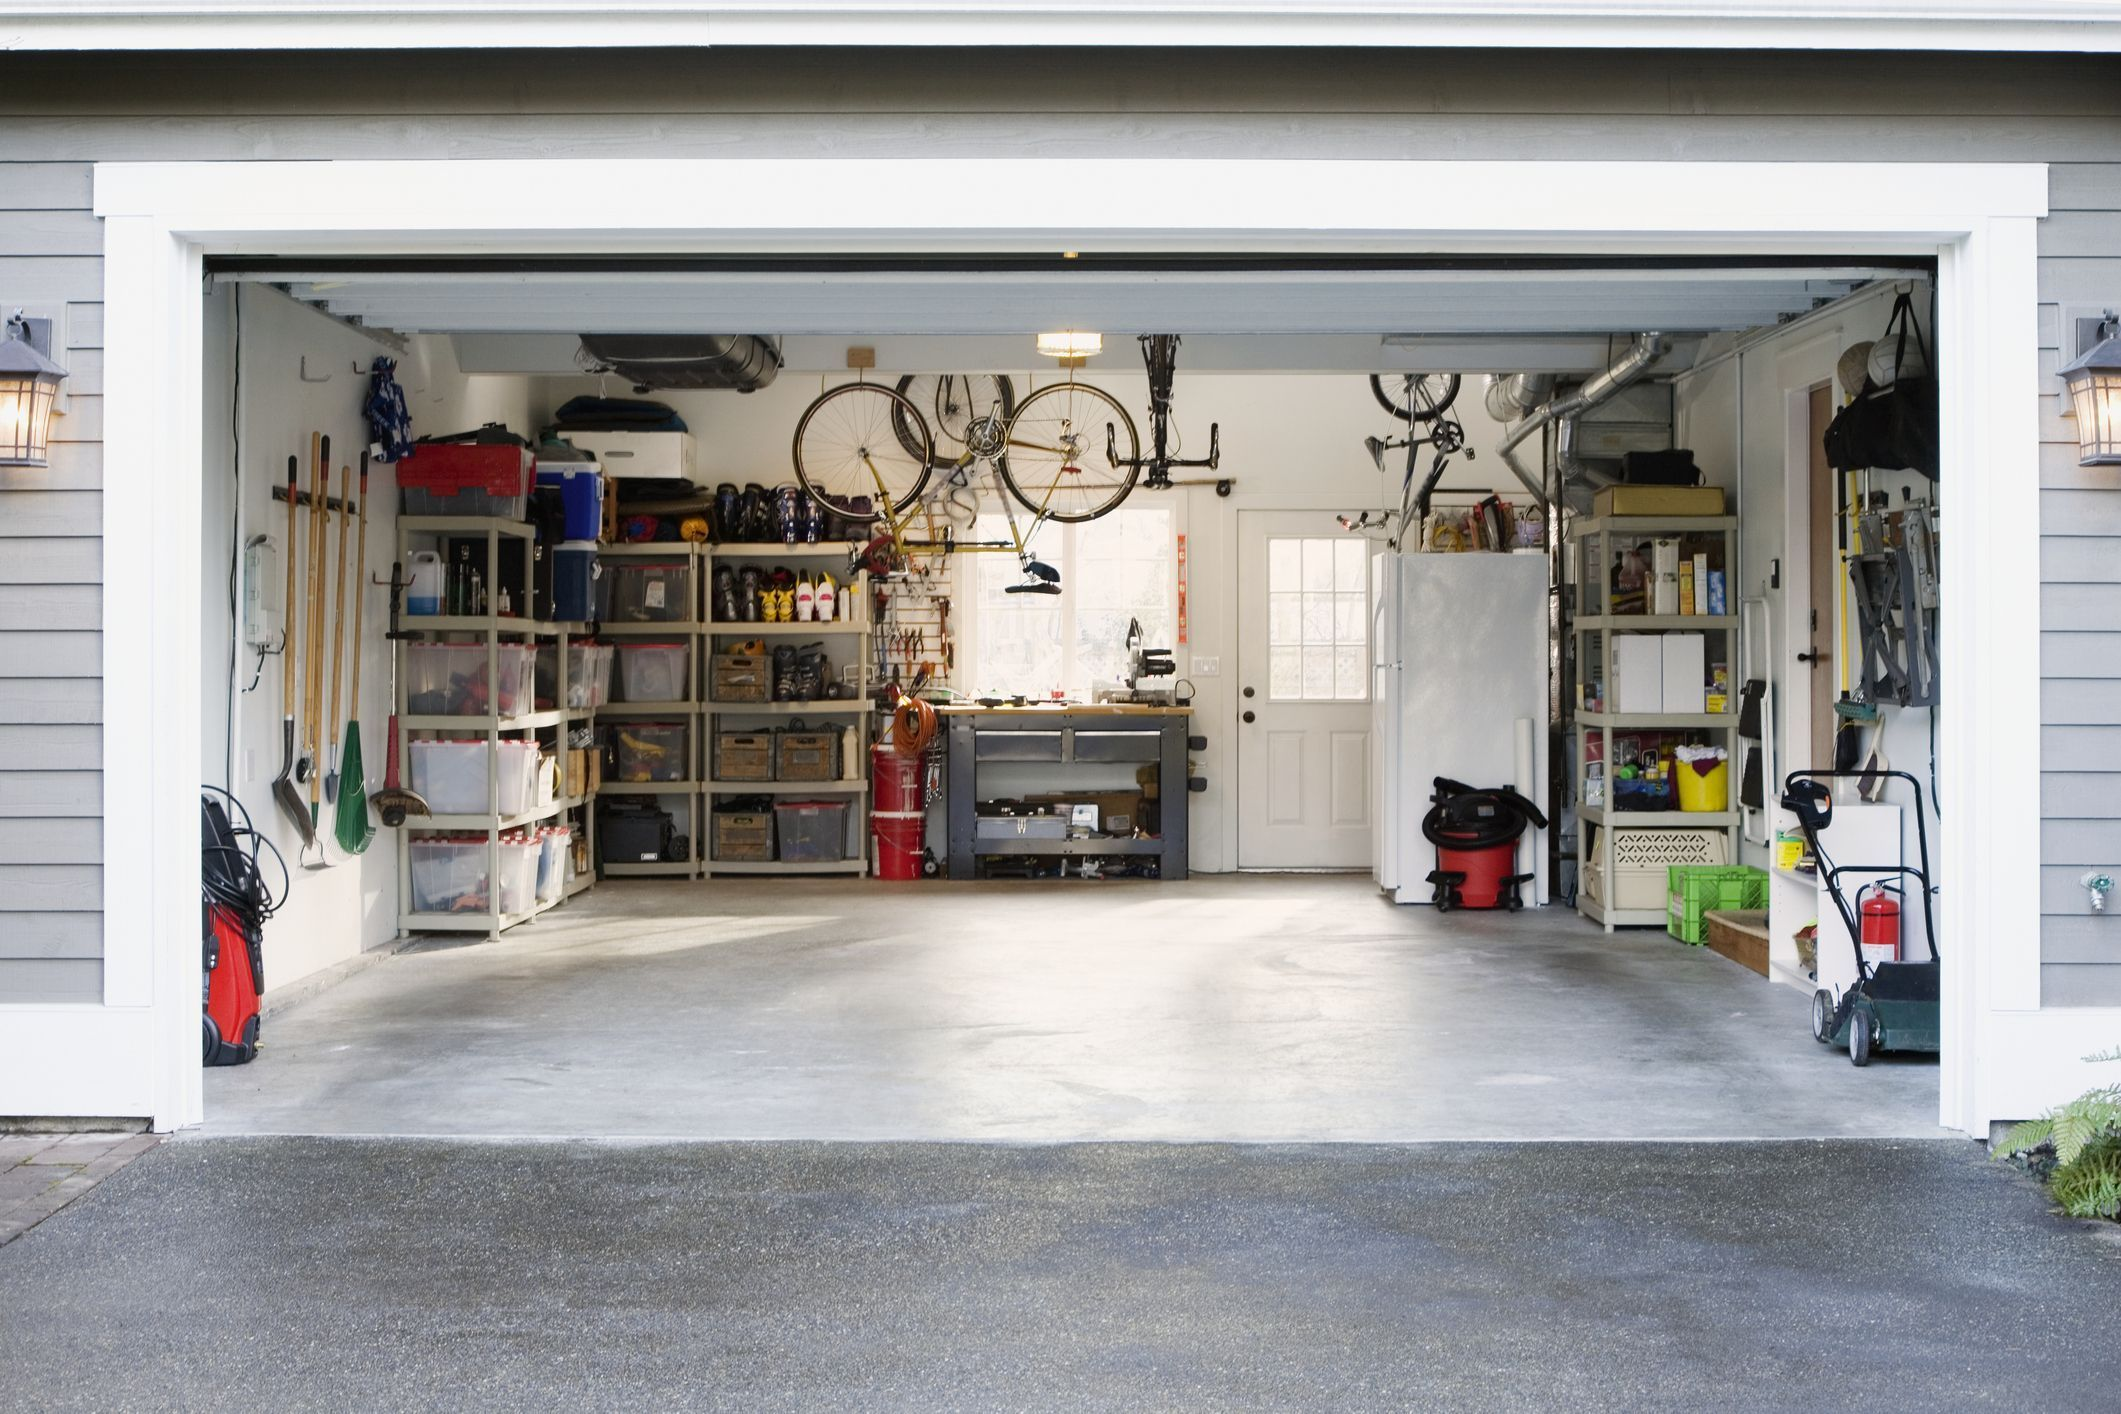 Get a Quality Concrete Garage Floor With These Tips